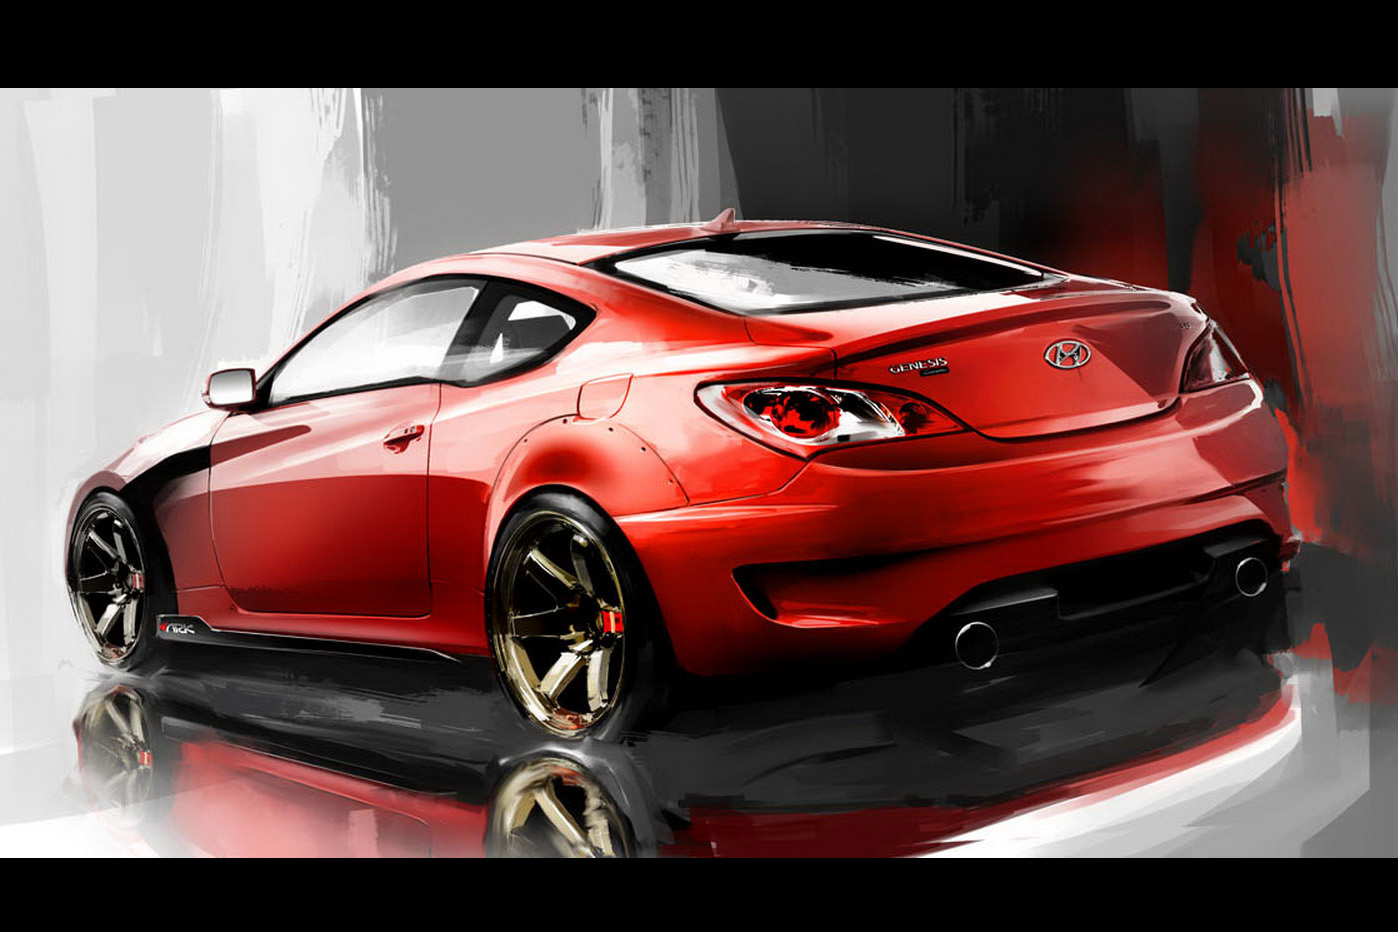 2011 Hyundai Genesis Coupe 2 0t Photos Price Specifications Reviews Machinespider Com